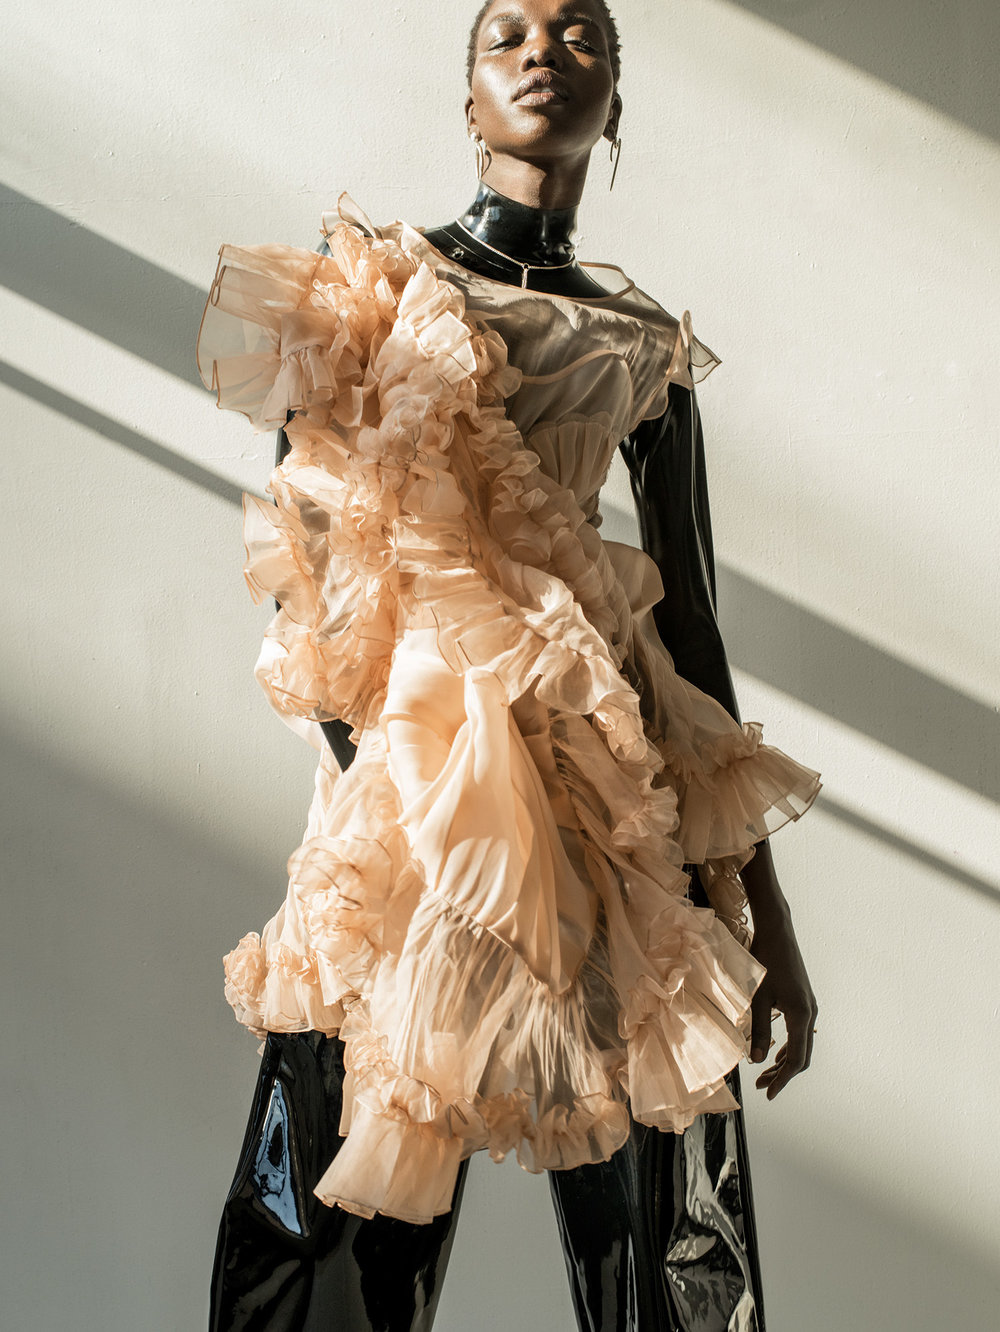 iris covet book fashion editorial kelsey randall peach silk organza mermaid seashell ruffle hem full skirt sheer dress